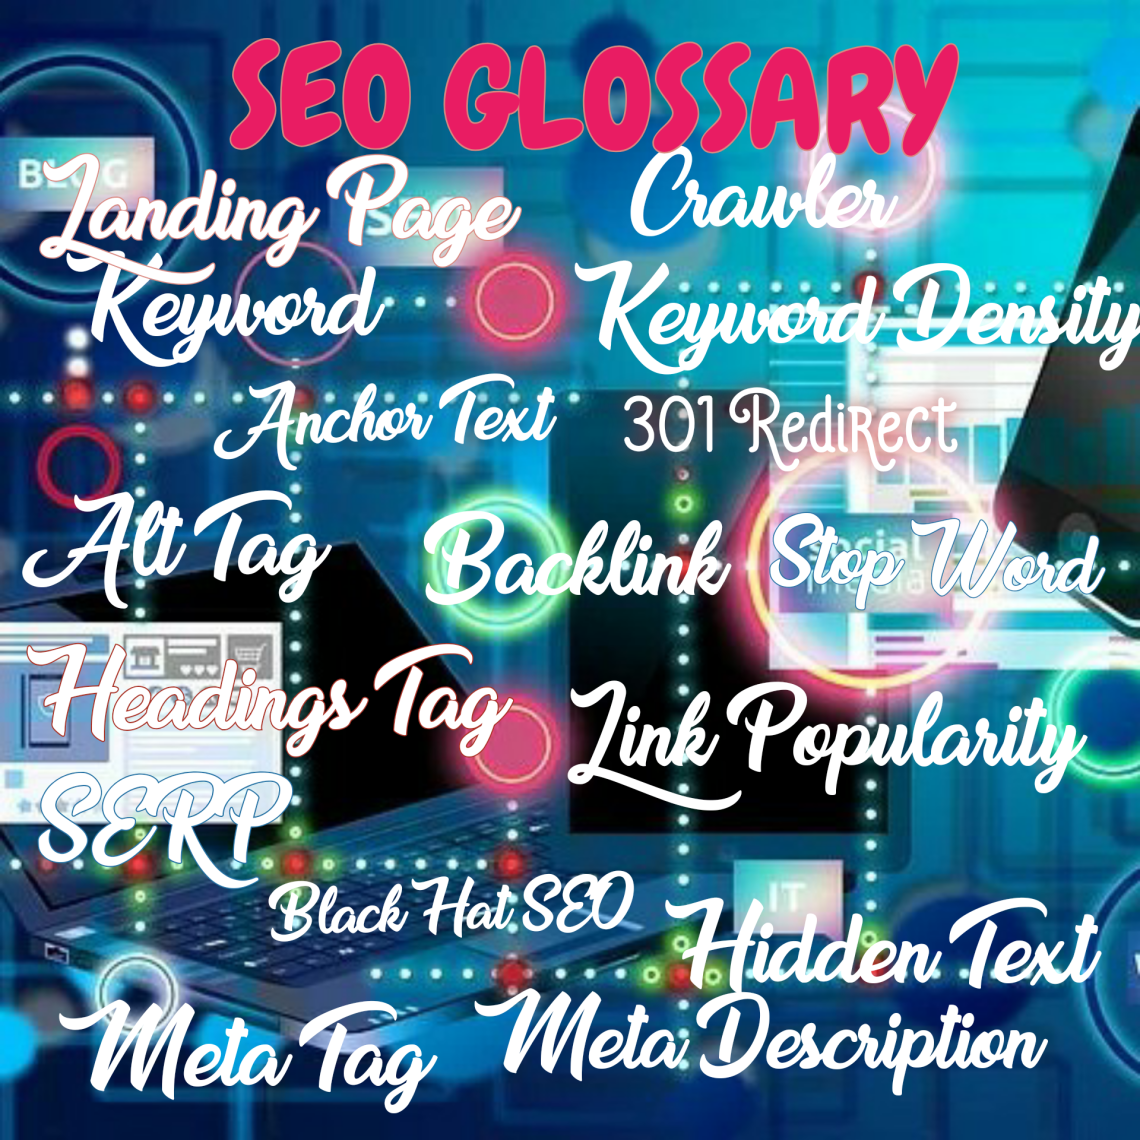 Basic SEO Terms and Definitions For Beginners